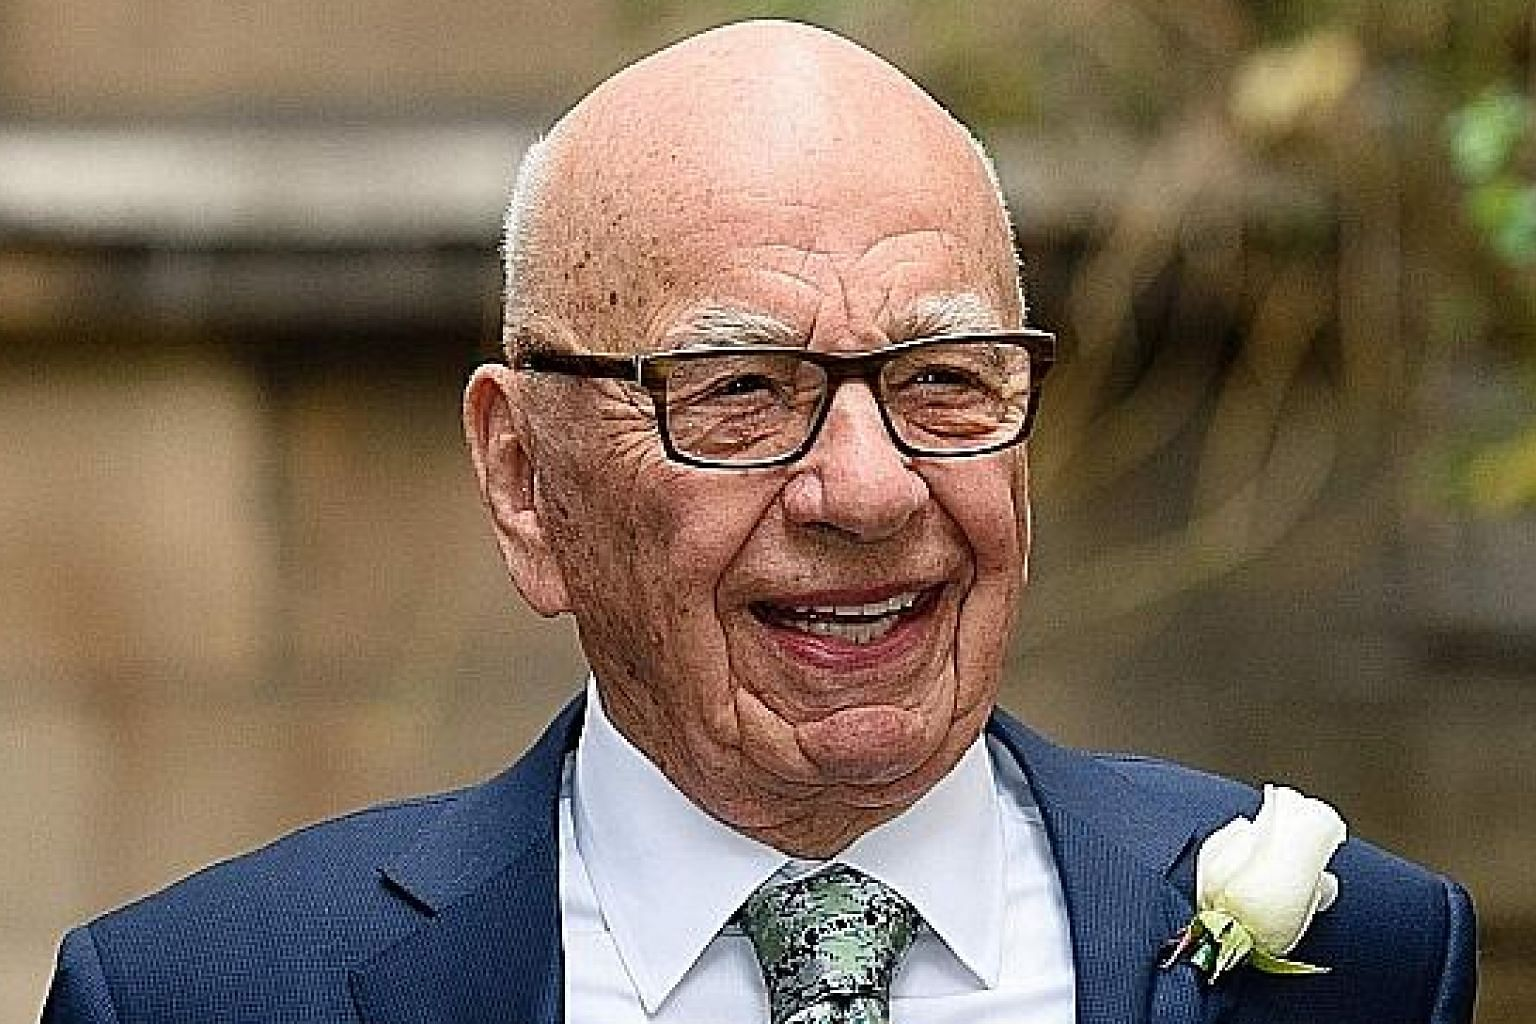 Mr Rupert Murdoch already owns 39 per cent of Sky. His 21st Century Fox has been trying to buy Sky since December 2016.